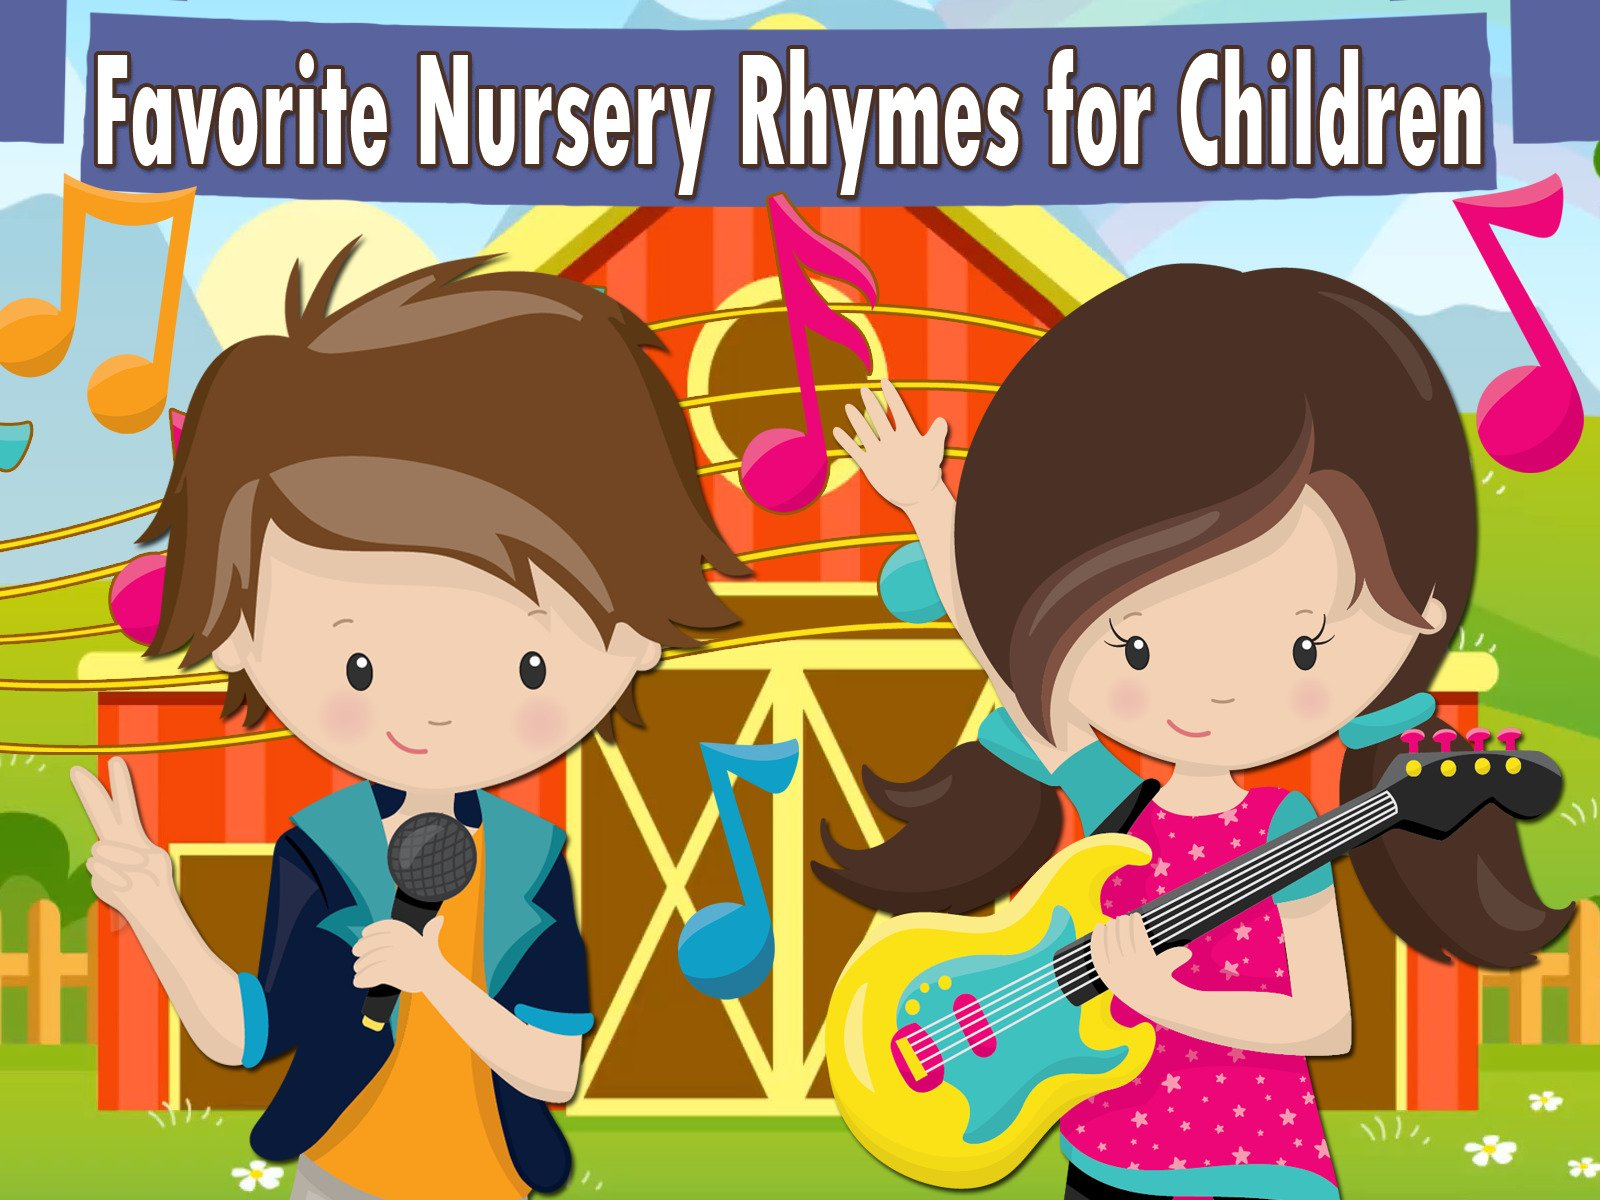 Favorite Nursery Rhymes for Children - Season 1